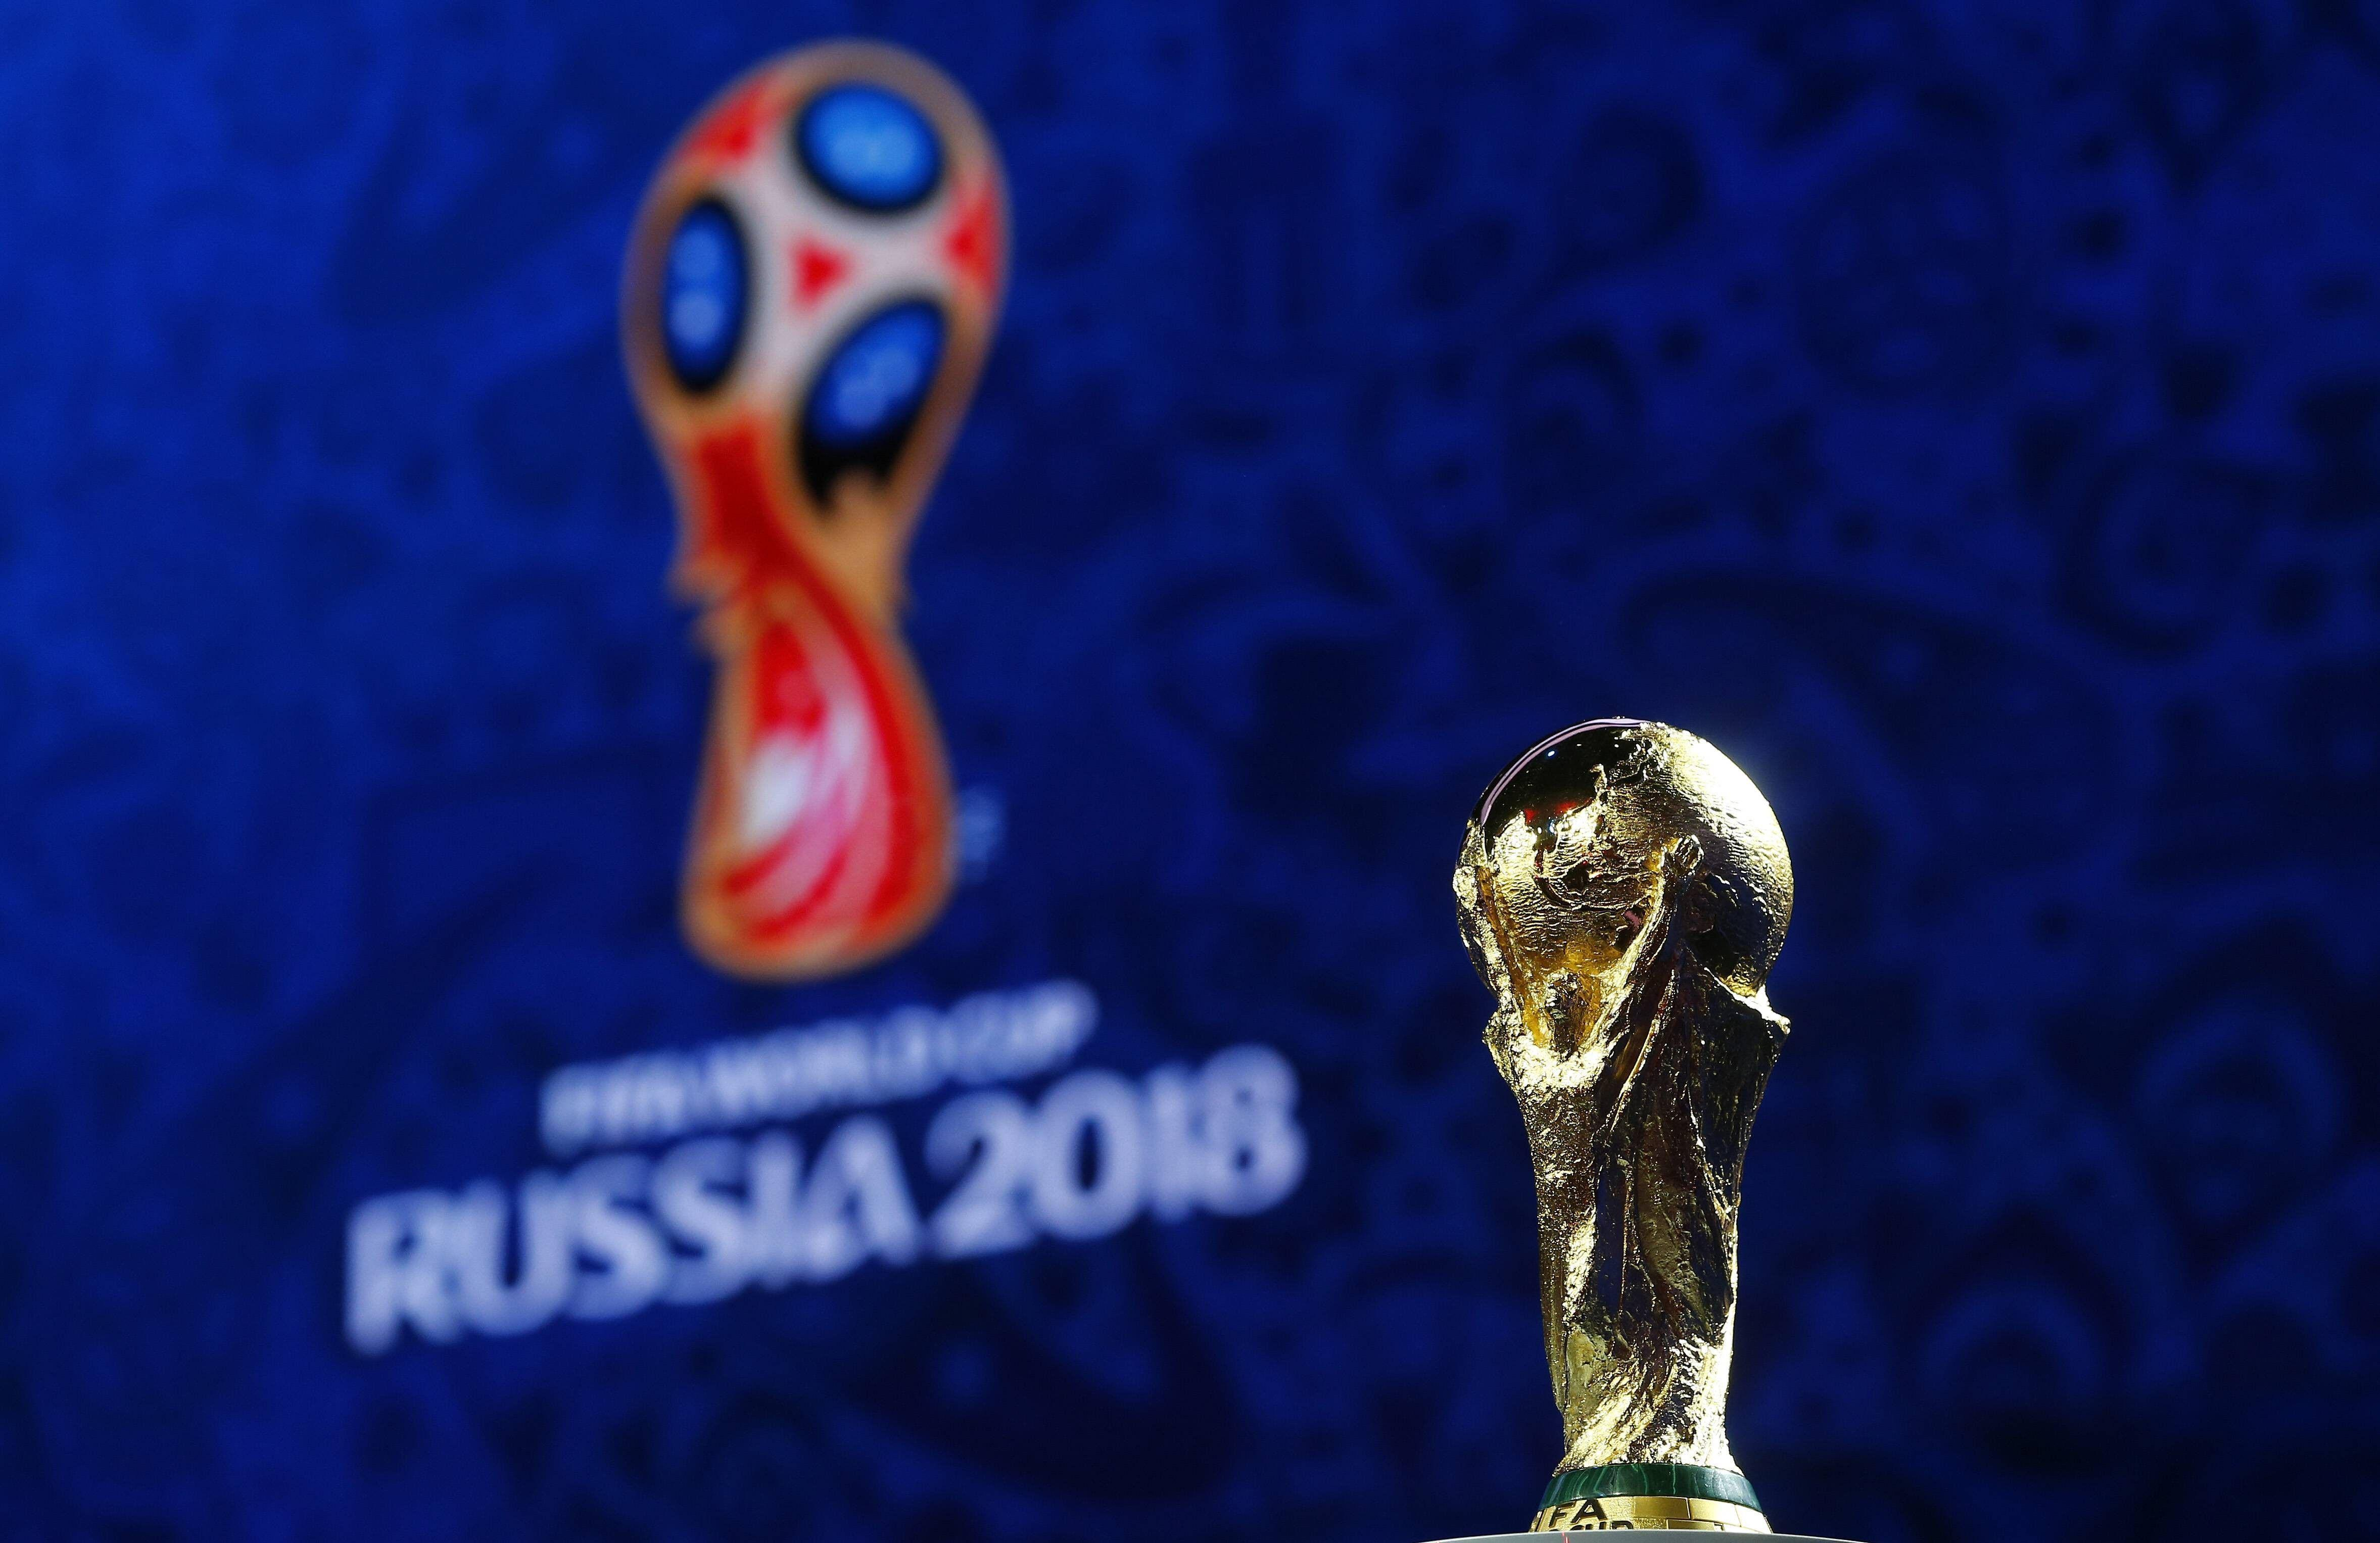 Gold Cup 2018 FIFA World Cup wallpapers and images - wallpapers ...